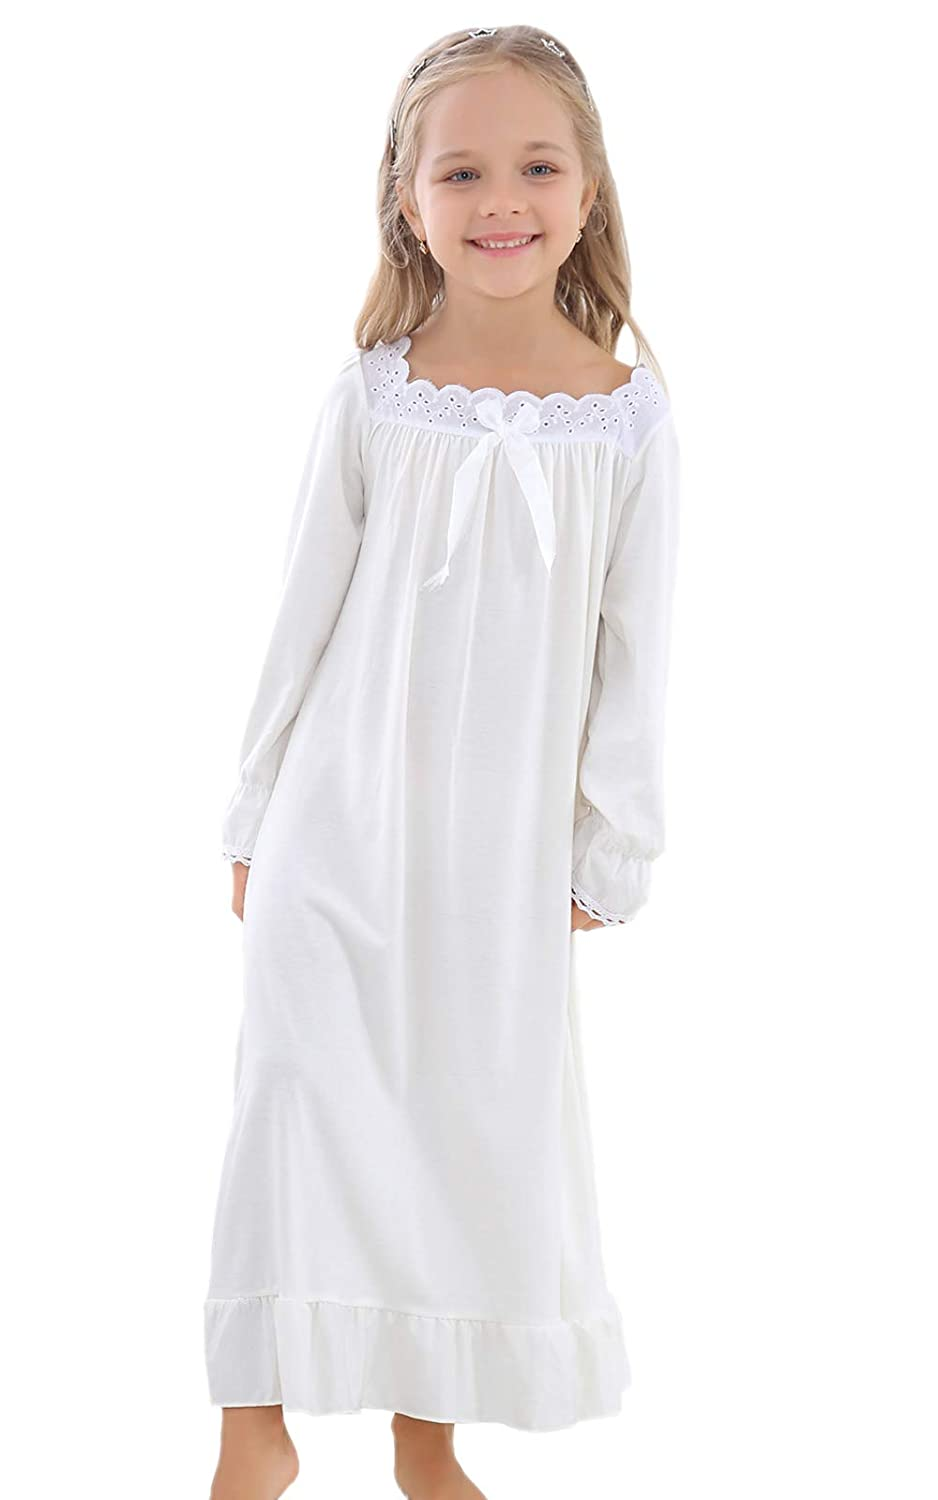 Vintage Style Children's Clothing: Girls, Boys, Baby, Toddler Horcute Girls Cotton Long and Short Sleeve Sleepshirts Nightshirts Pajamas Nightgown for 3-12 Years $17.99 AT vintagedancer.com